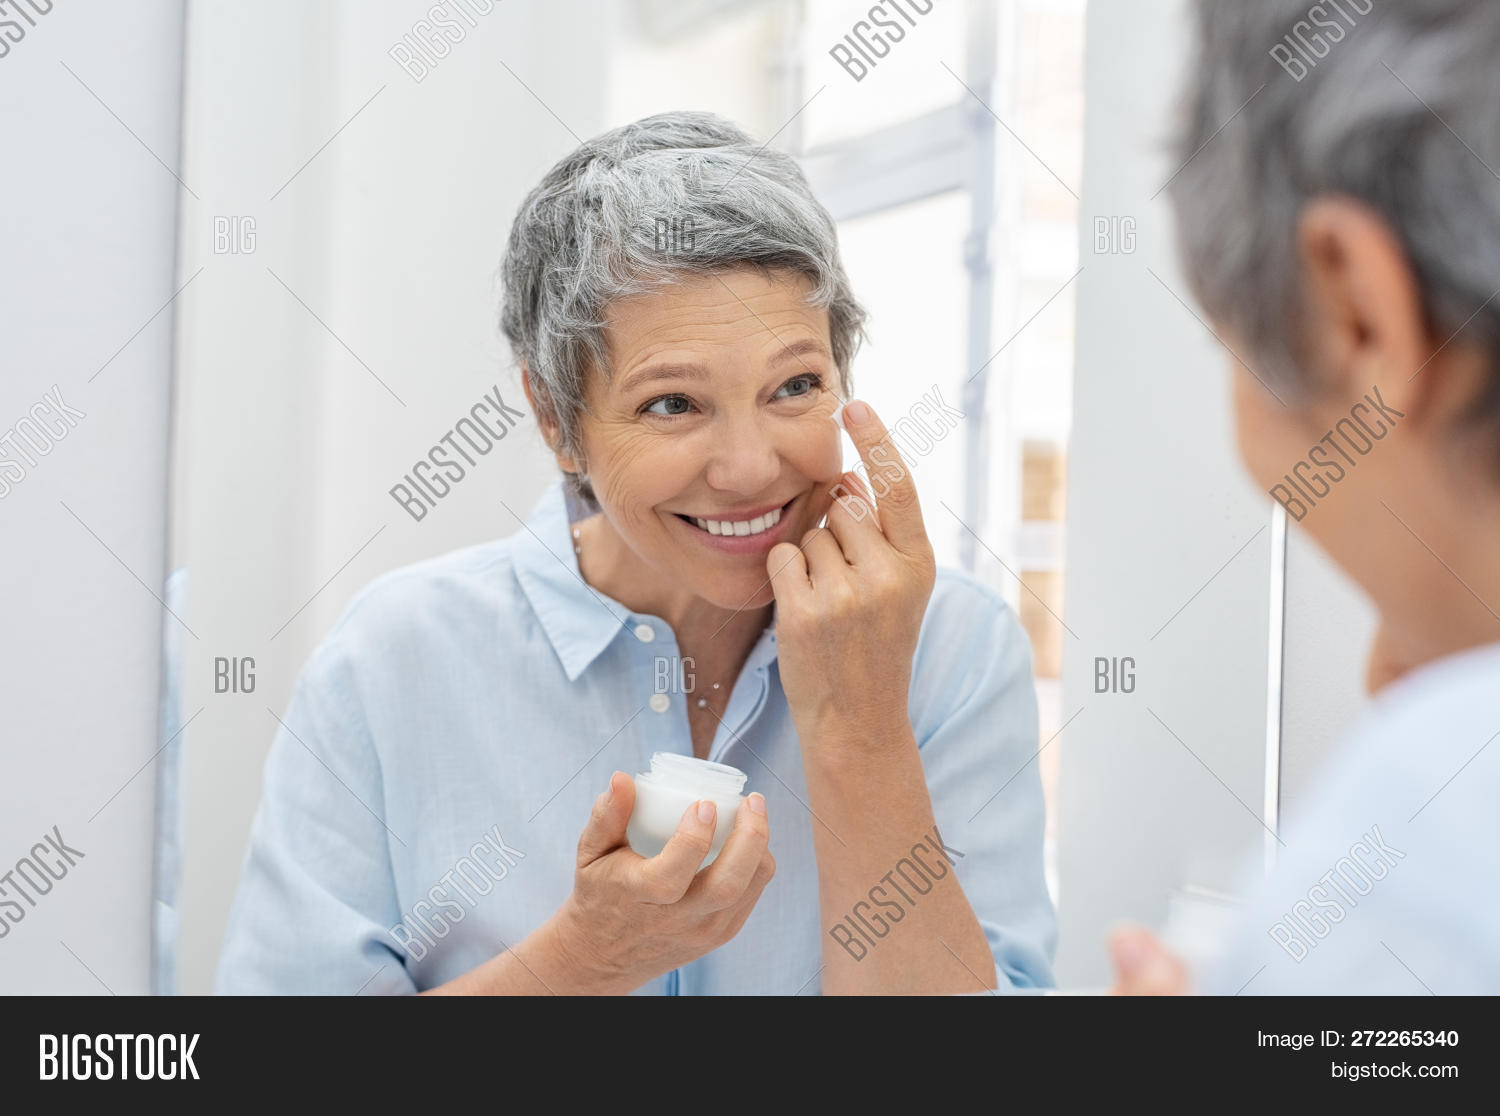 50s,aging process,aging skin,anti,anti aging,anti aging cream,apply,applying,bathroom,beauty,beauty treatment,beauty woman,care,caucasian,clean,cleansing,complexion,cosmetic,cosmetology,cream,dermatology,elderly woman,face,facial,finger,hand,happy,health,healthy,looking at mirror,mature,middle aged woman,mirror,moisturizer,moisturizer cream,moisturizing,morning,routine,senior,senior woman,seniors,skin,skin care,skincare,toothy smile,treatment,wrinkle,wrinkled,wrinkles